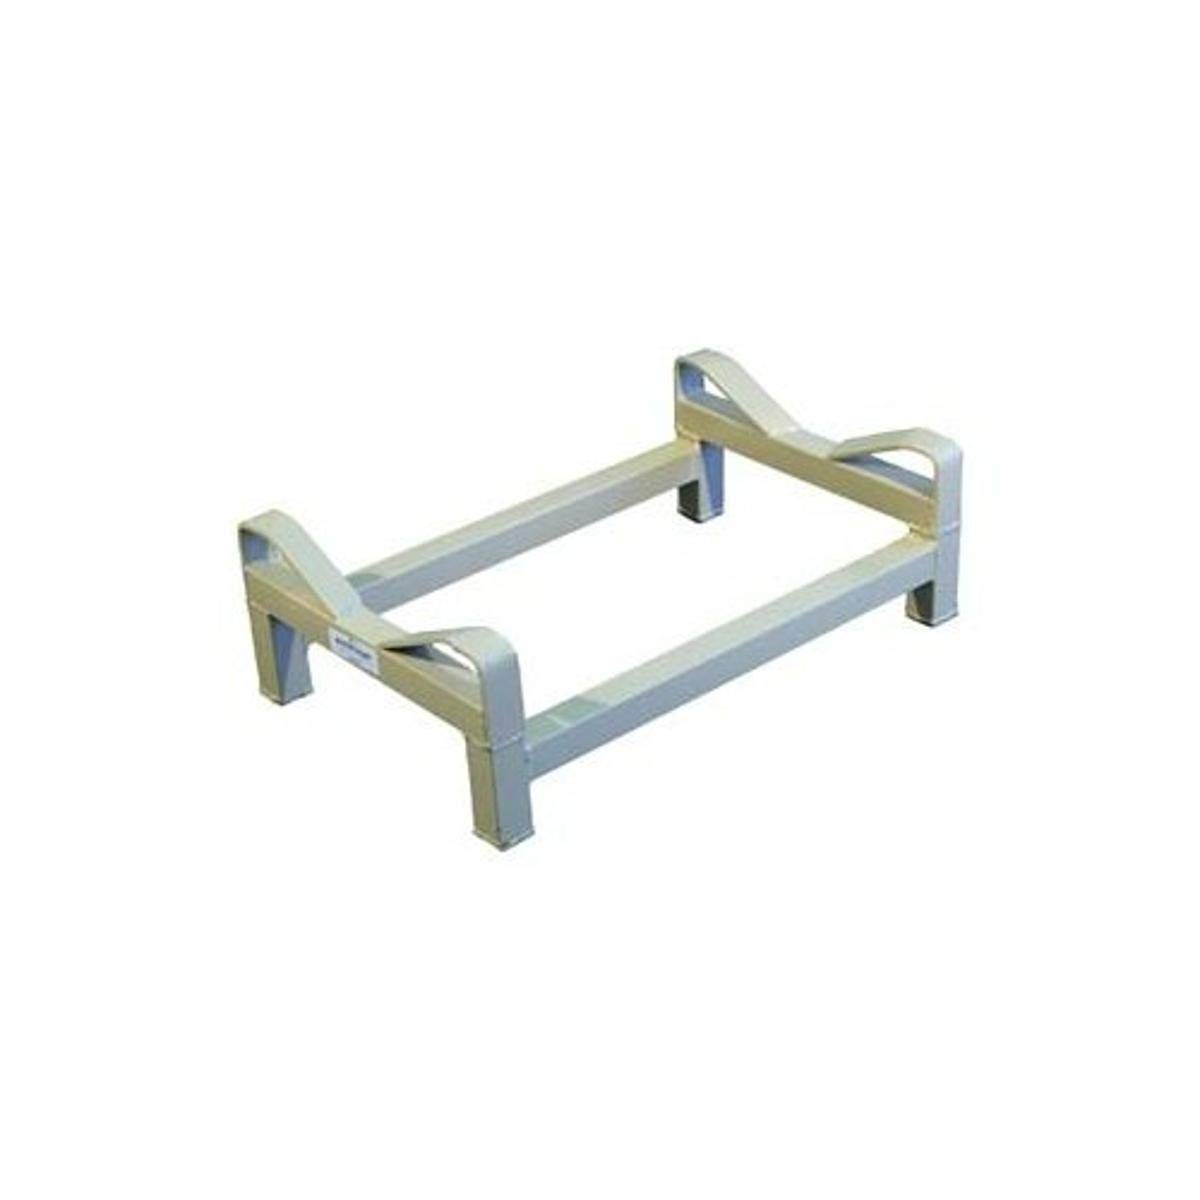 Brewmaster WE495 Barrel Rack for Classic One gal 8